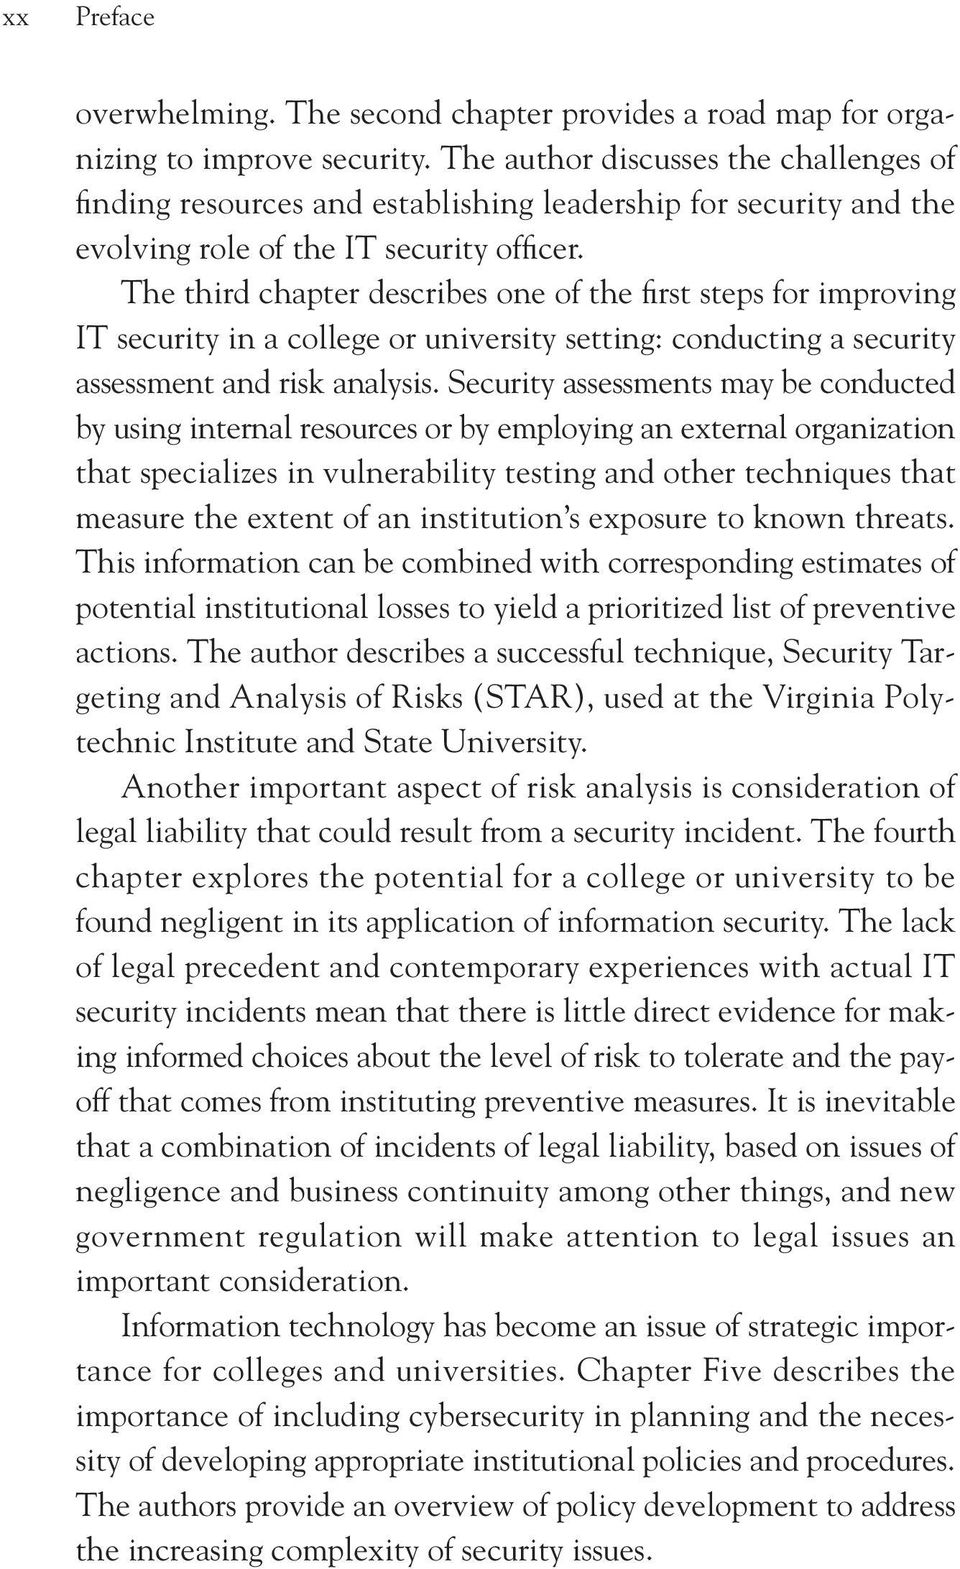 The third chapter describes one of the first steps for improving IT security in a college or university setting: conducting a security assessment and risk analysis.